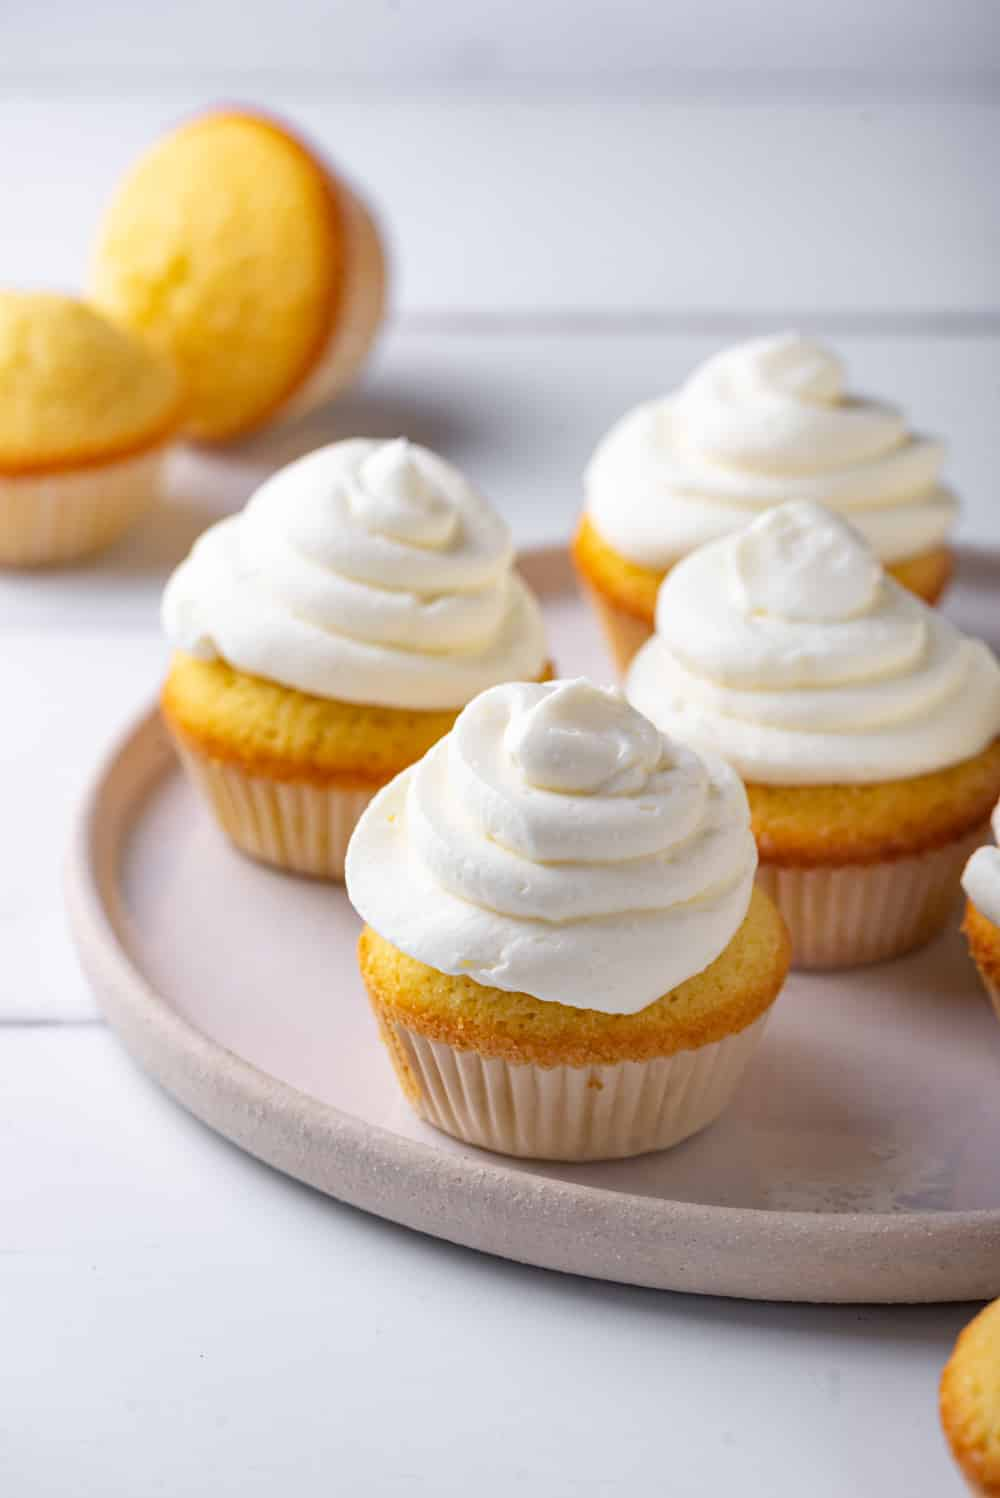 A grey plat with four keto cream cheese frosted vanilla cupcakes on it. There are two unfrosted cupcakes behind the plate. One is upright and one is on its side. Everything is set on a grey counter.